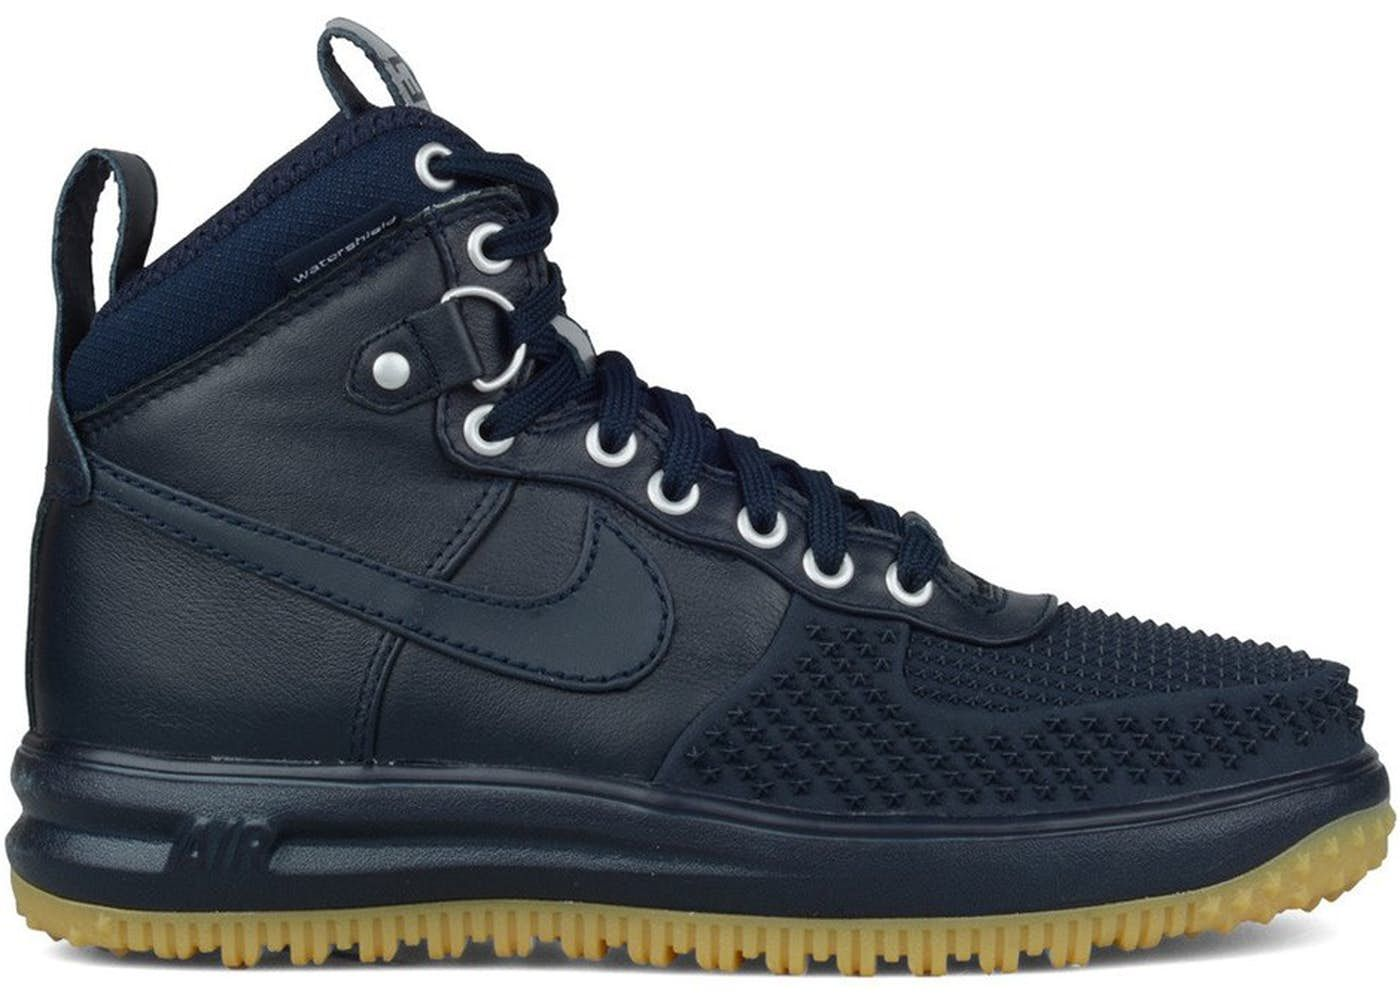 Nike Lunar Force 1 Duckboot Dark Obsidian Footwear Pinterest